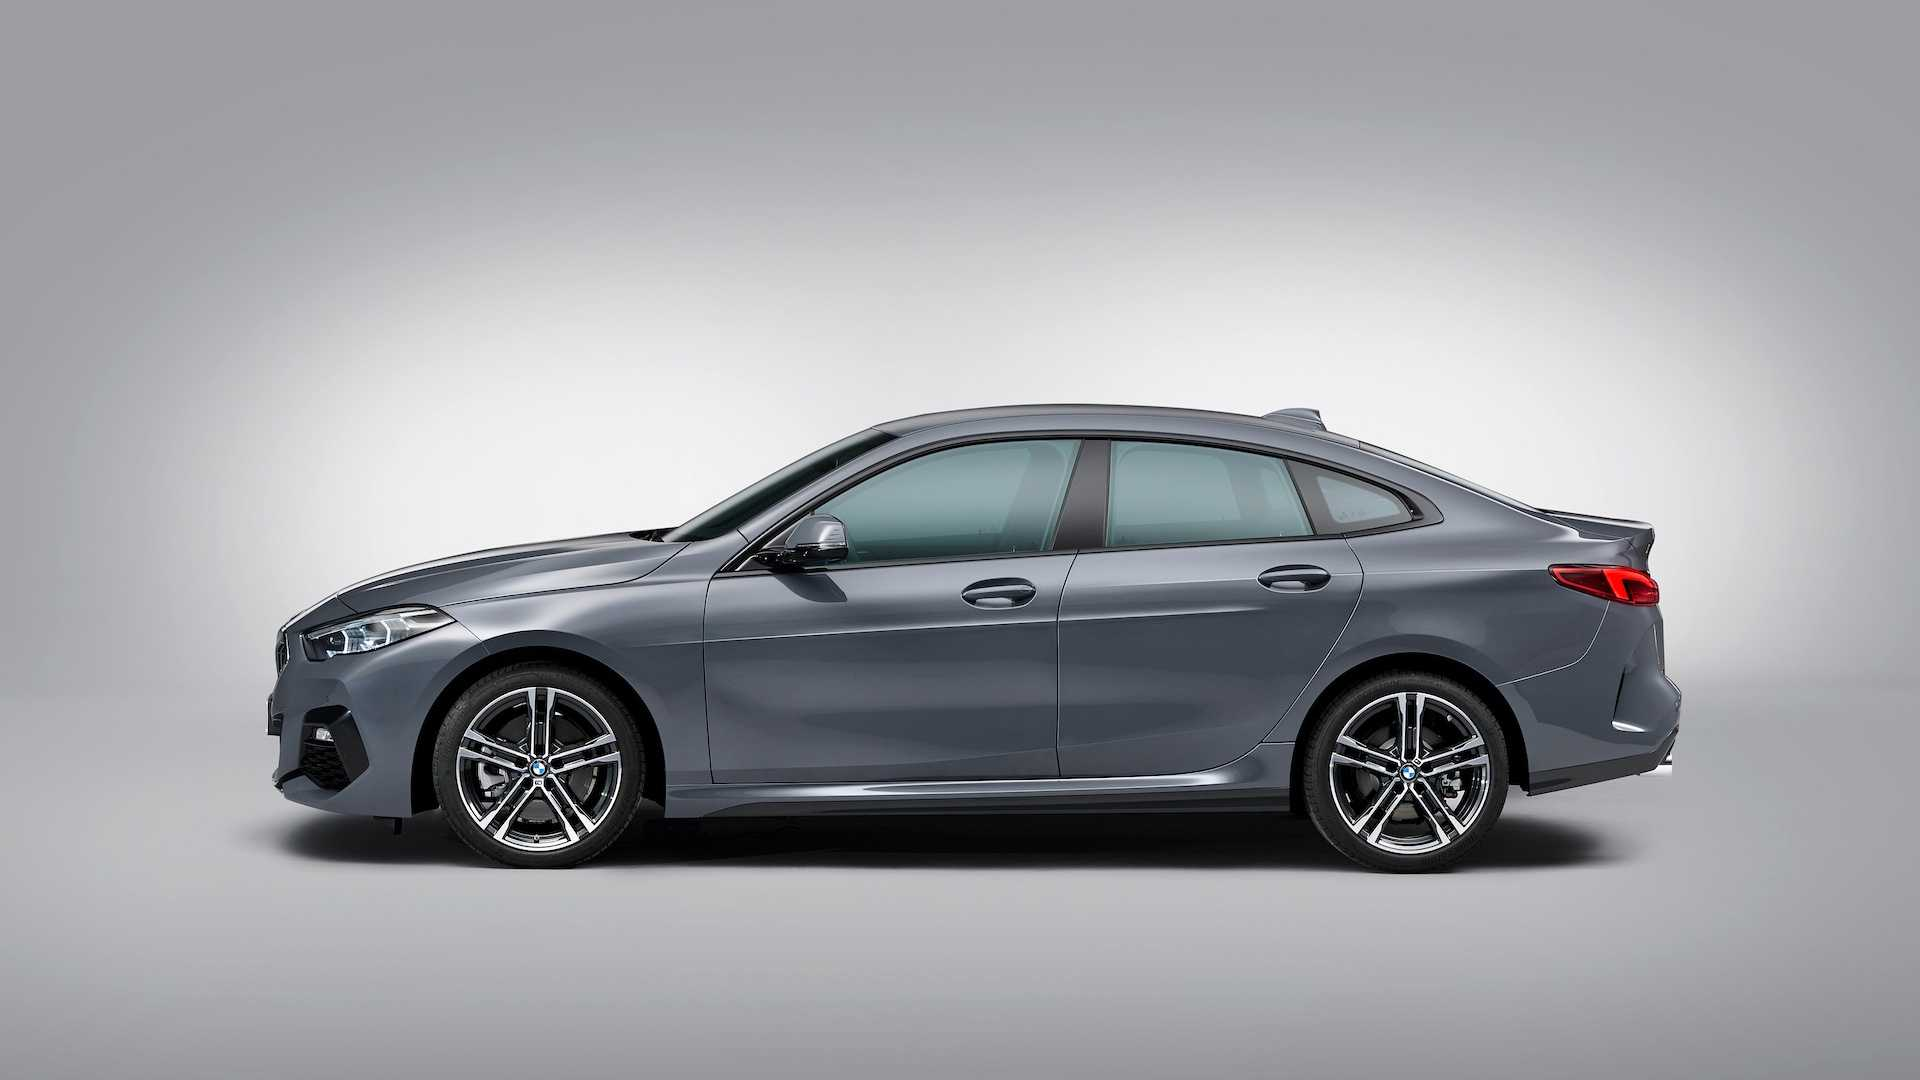 2020-bmw-2-series-gran-coupe-12